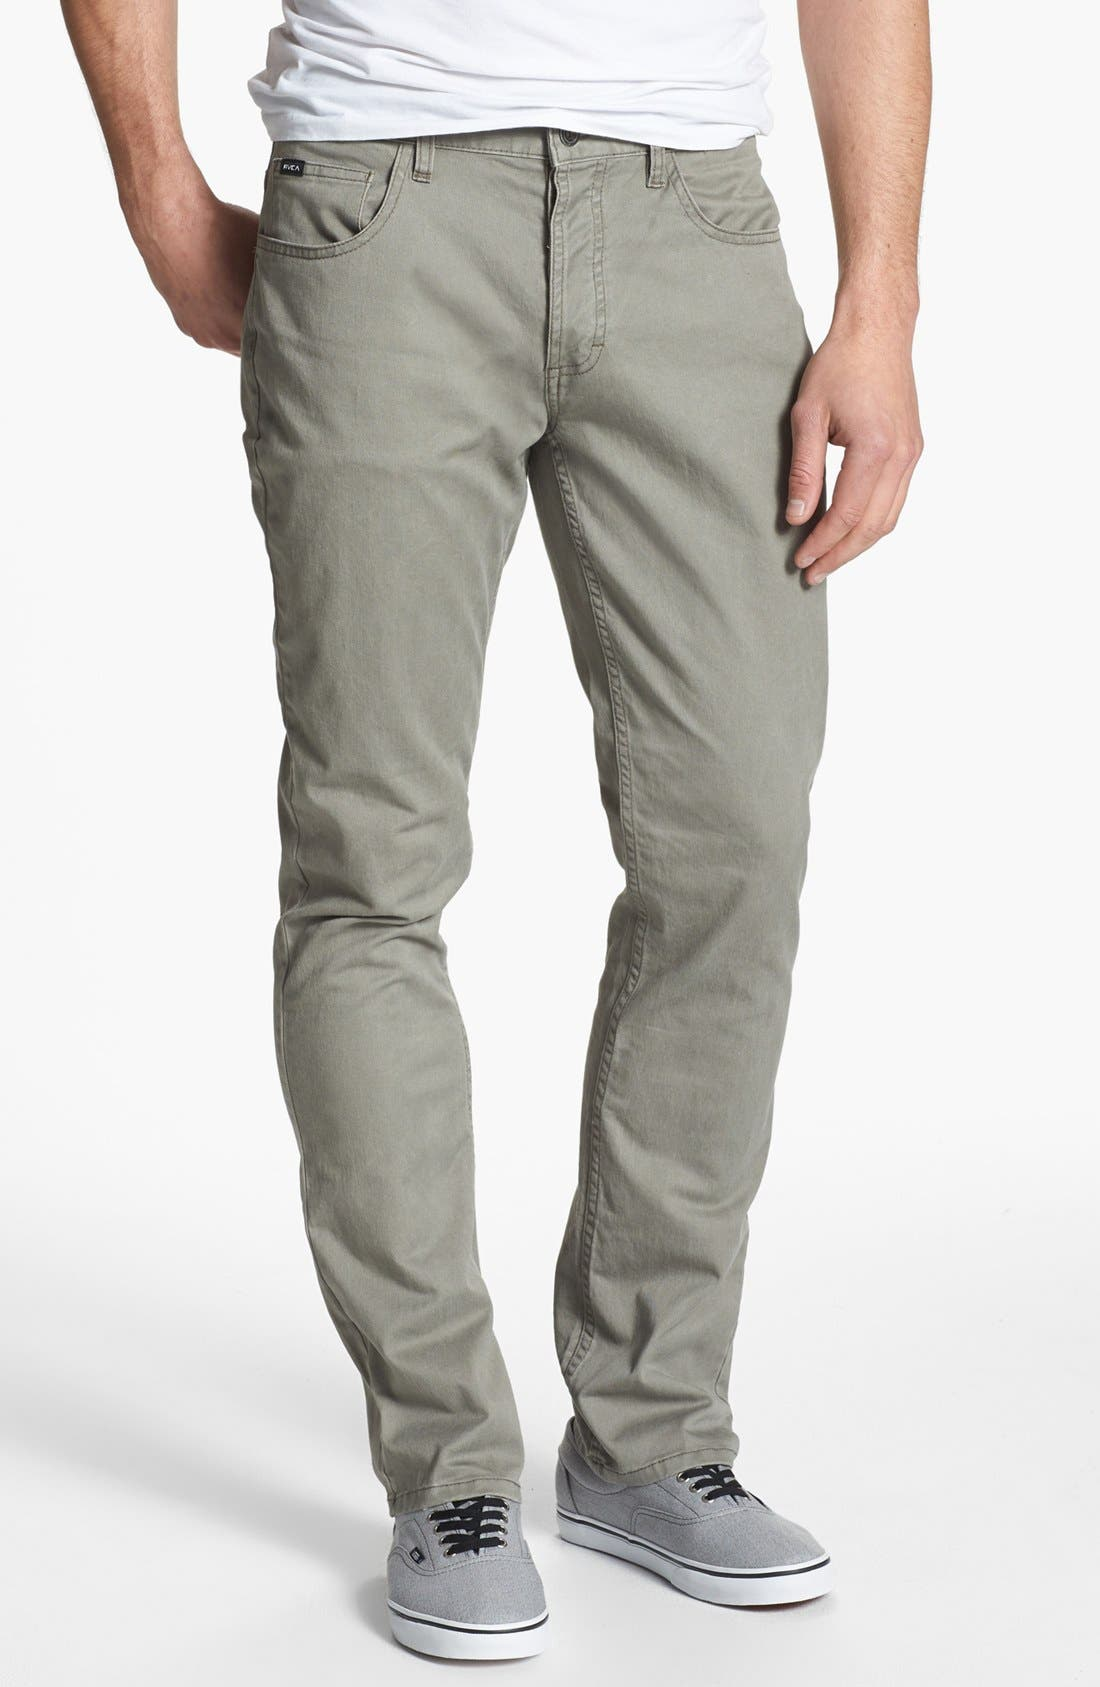 Alternate Image 1 Selected - RVCA 'Stay' Slim Fit Pants